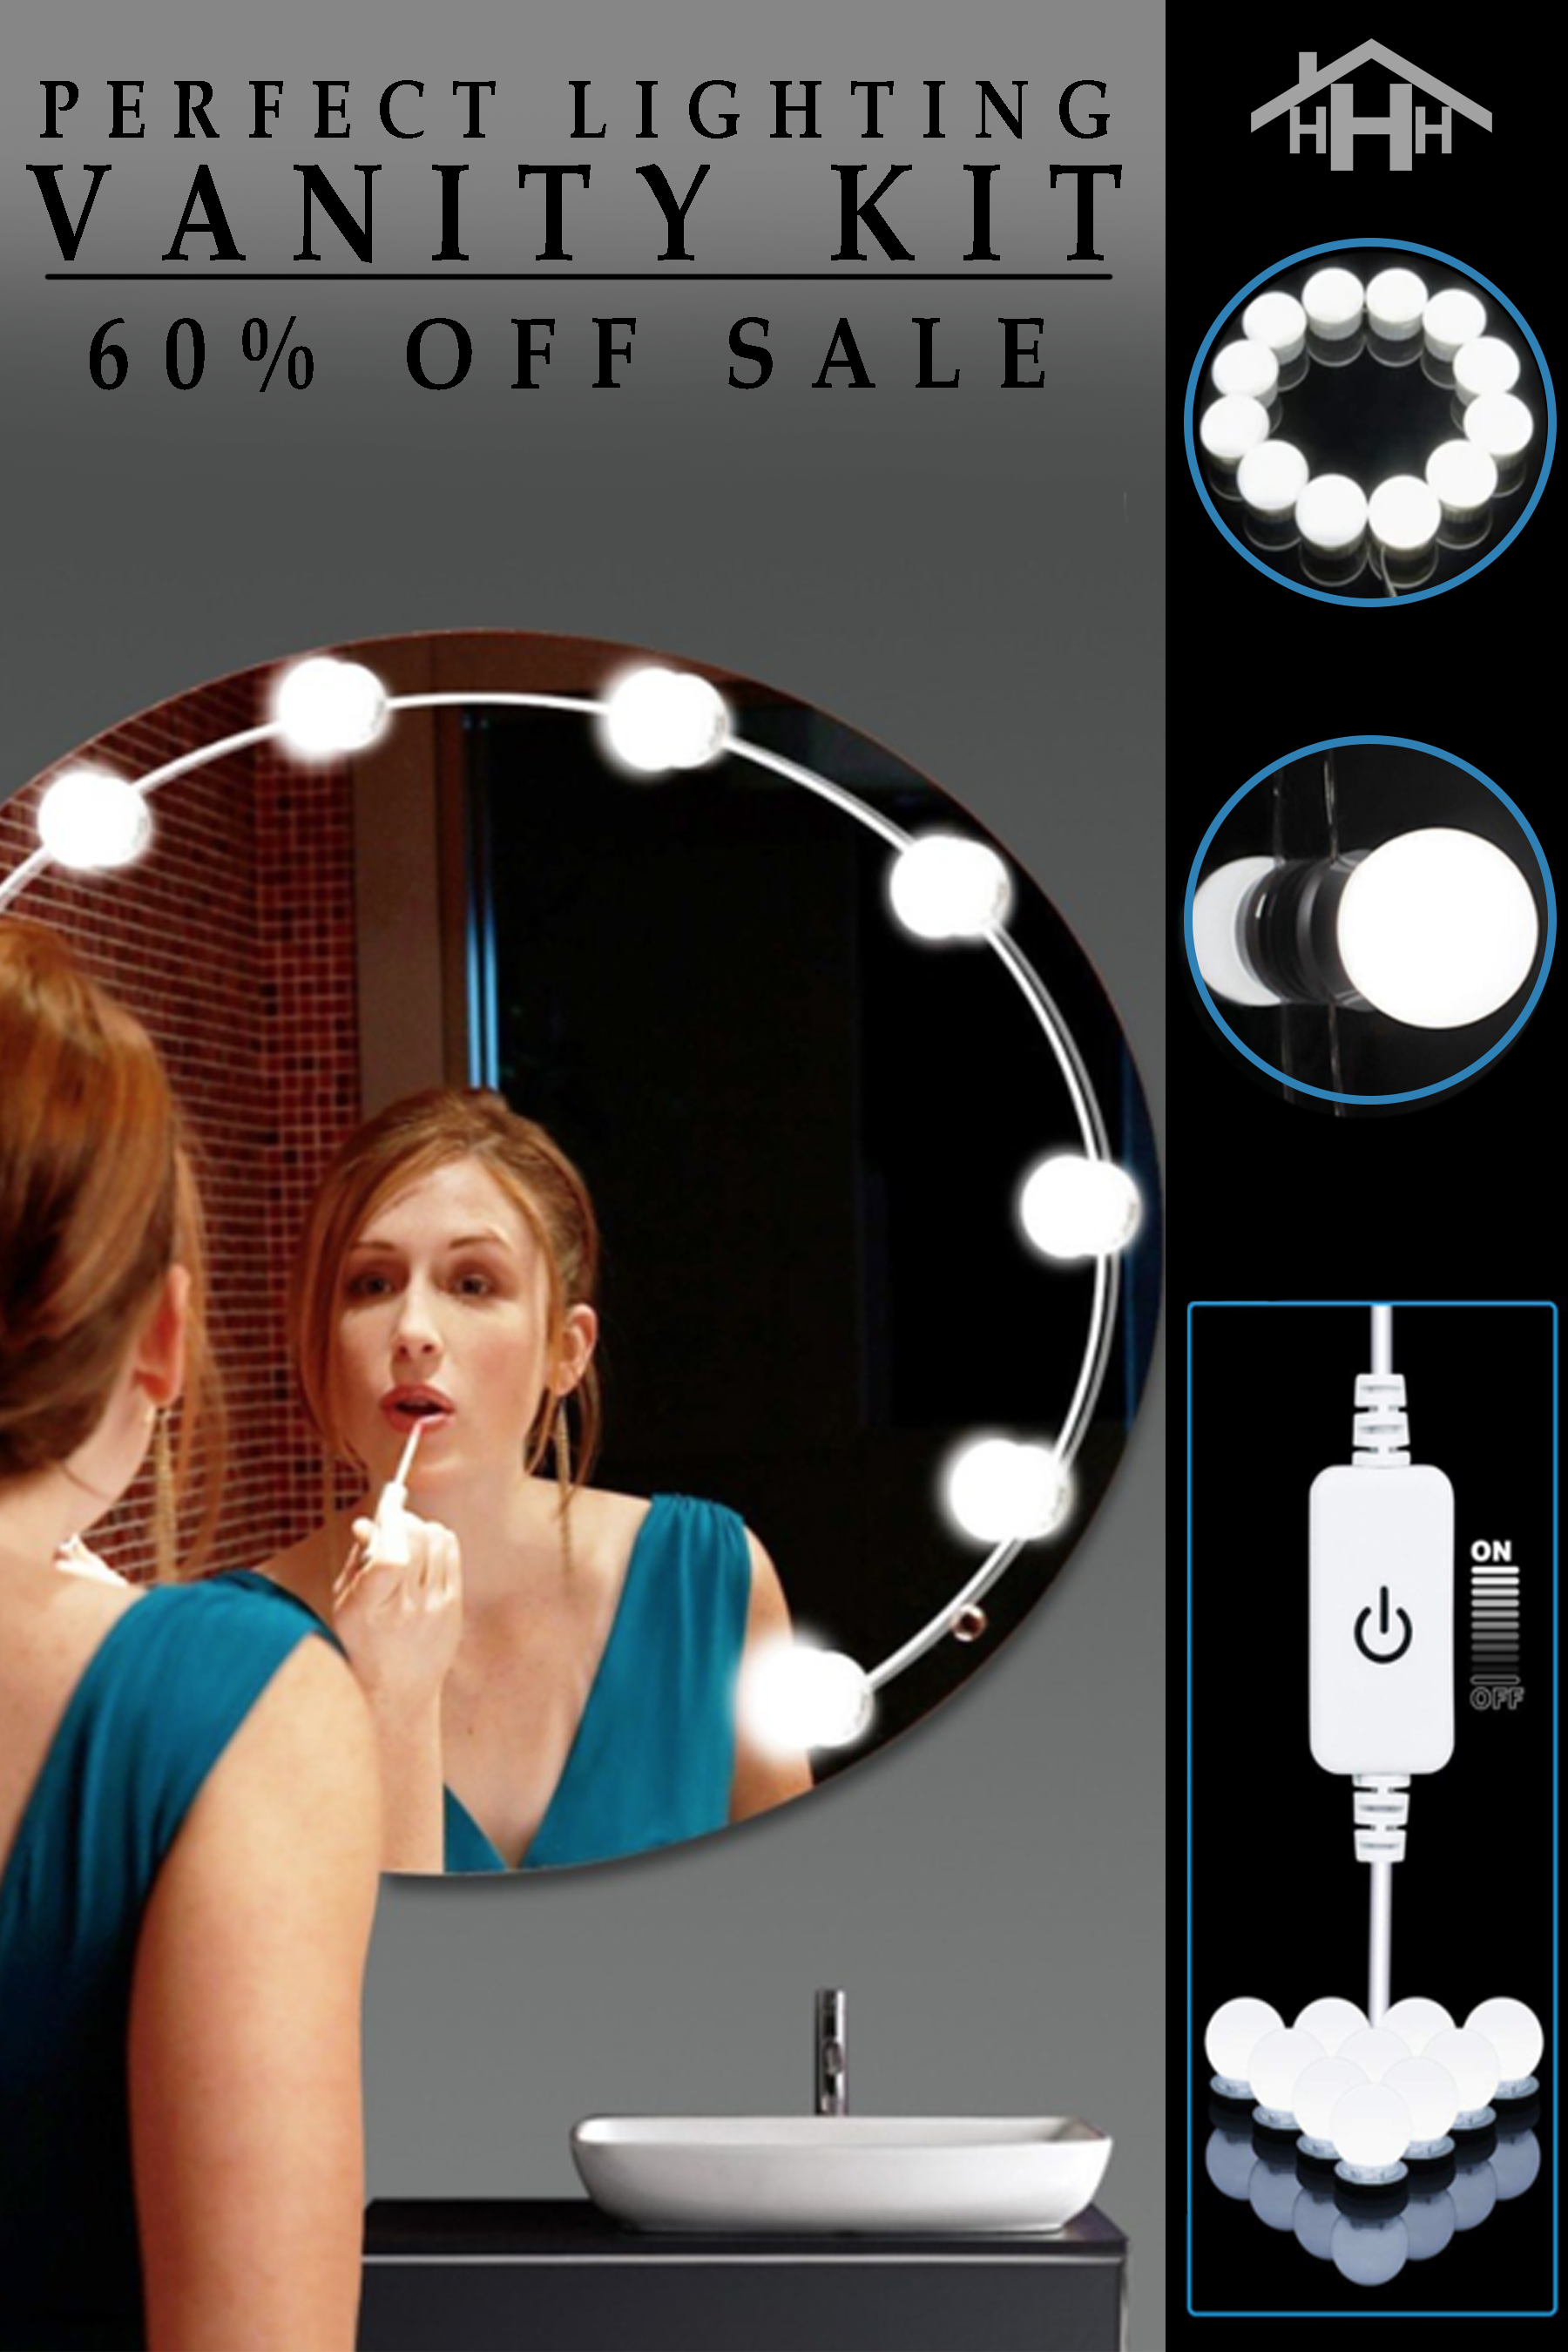 Get A Vanity LED Mirror For Under 100?! 😱. Yes Please